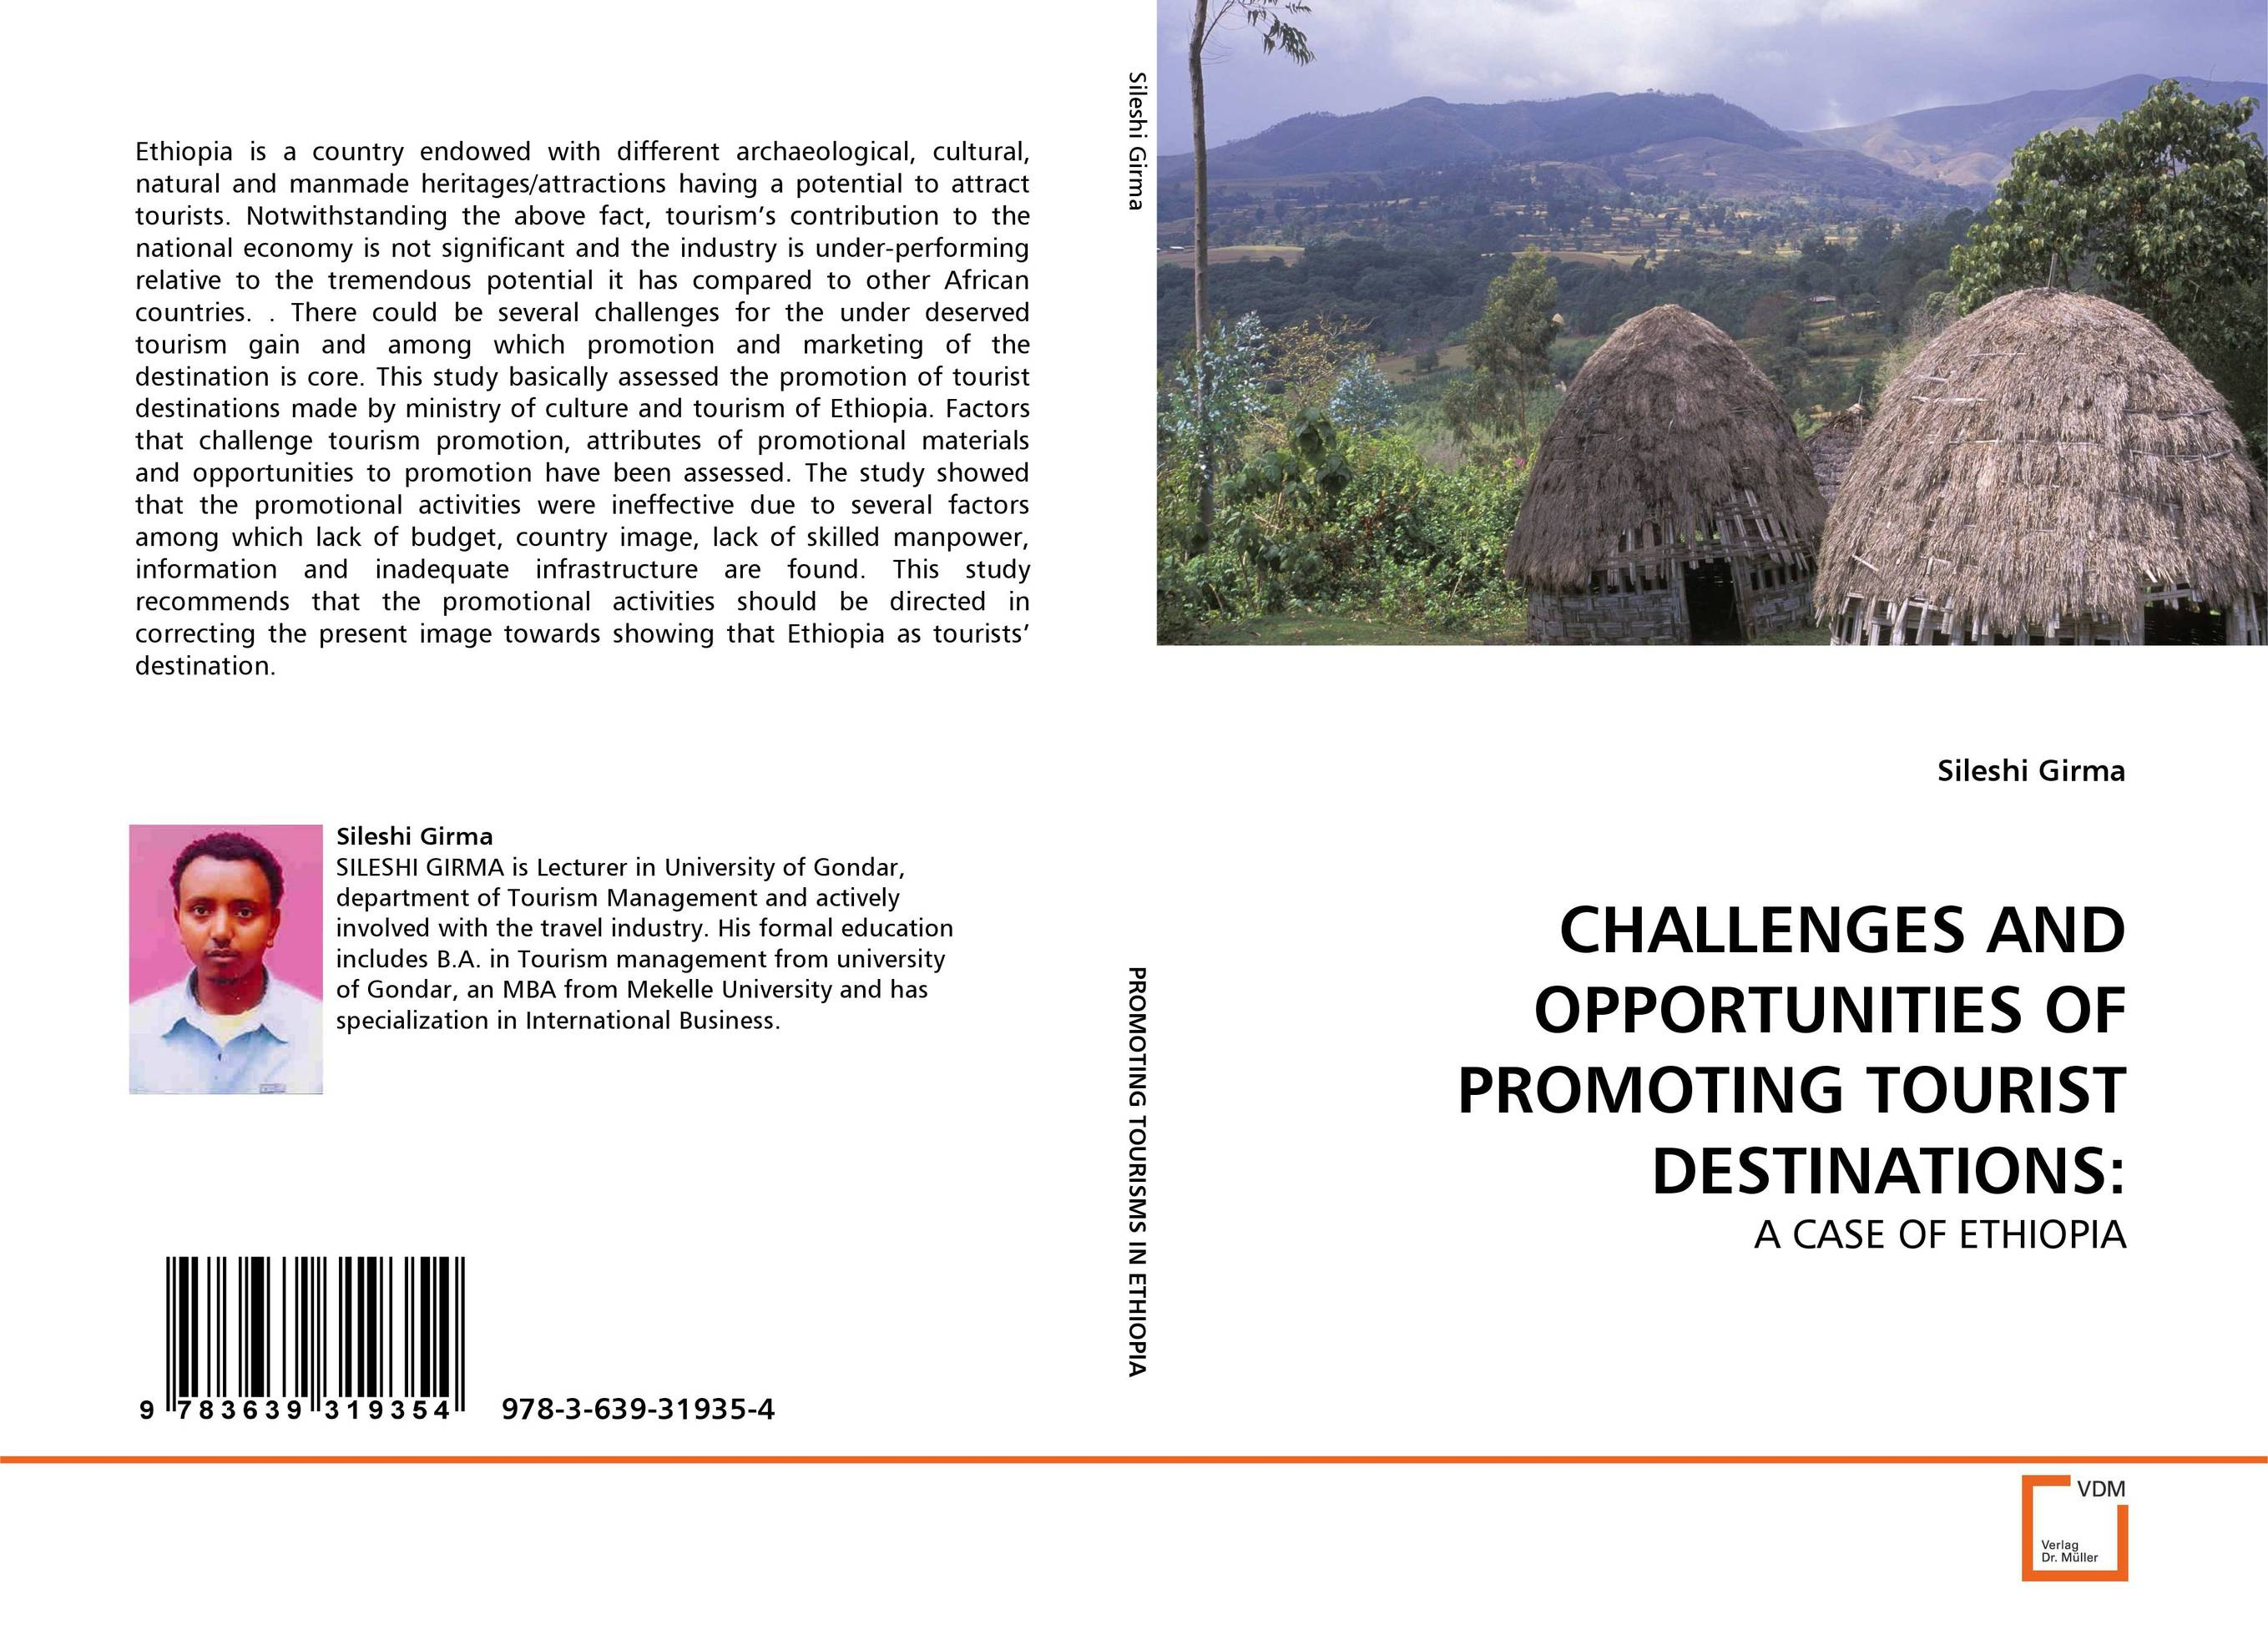 CHALLENGES AND OPPORTUNITIES OF PROMOTING TOURIST DESTINATIONS: challenges and opportunities of indigenous church leaders in uganda